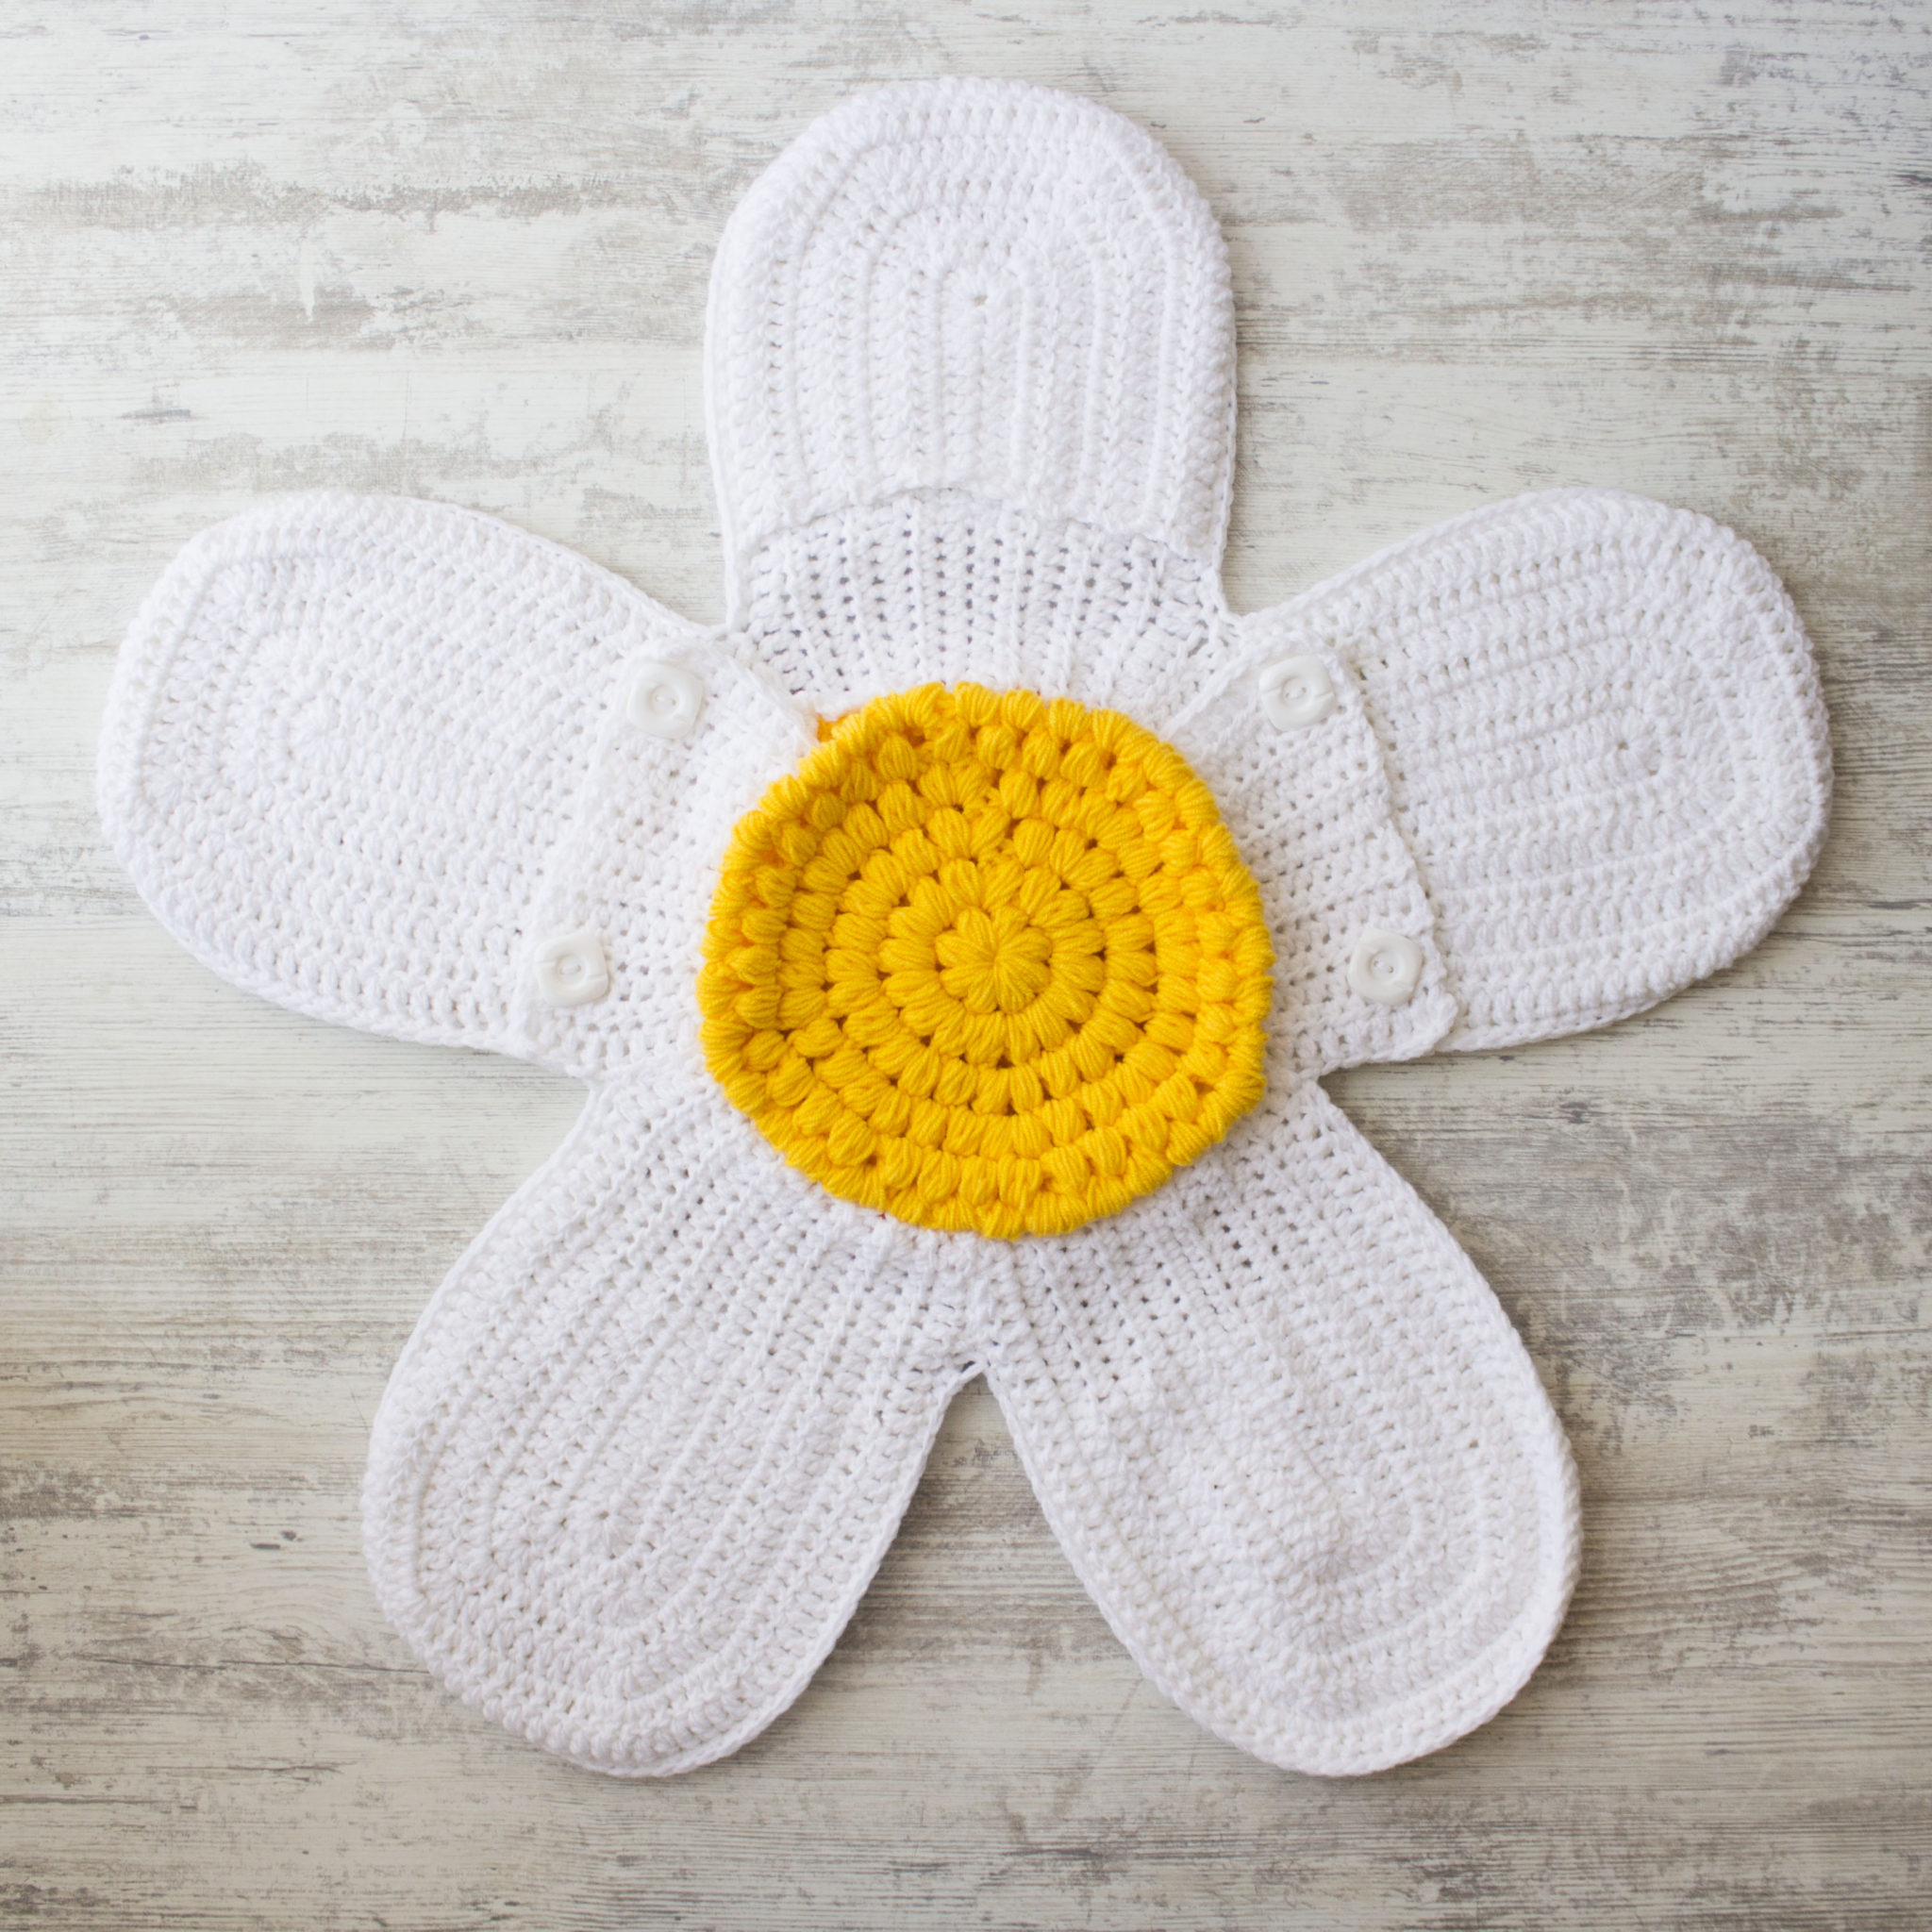 The Daisy Flower Crochet Cocoon Free Pattern My Accessory Box